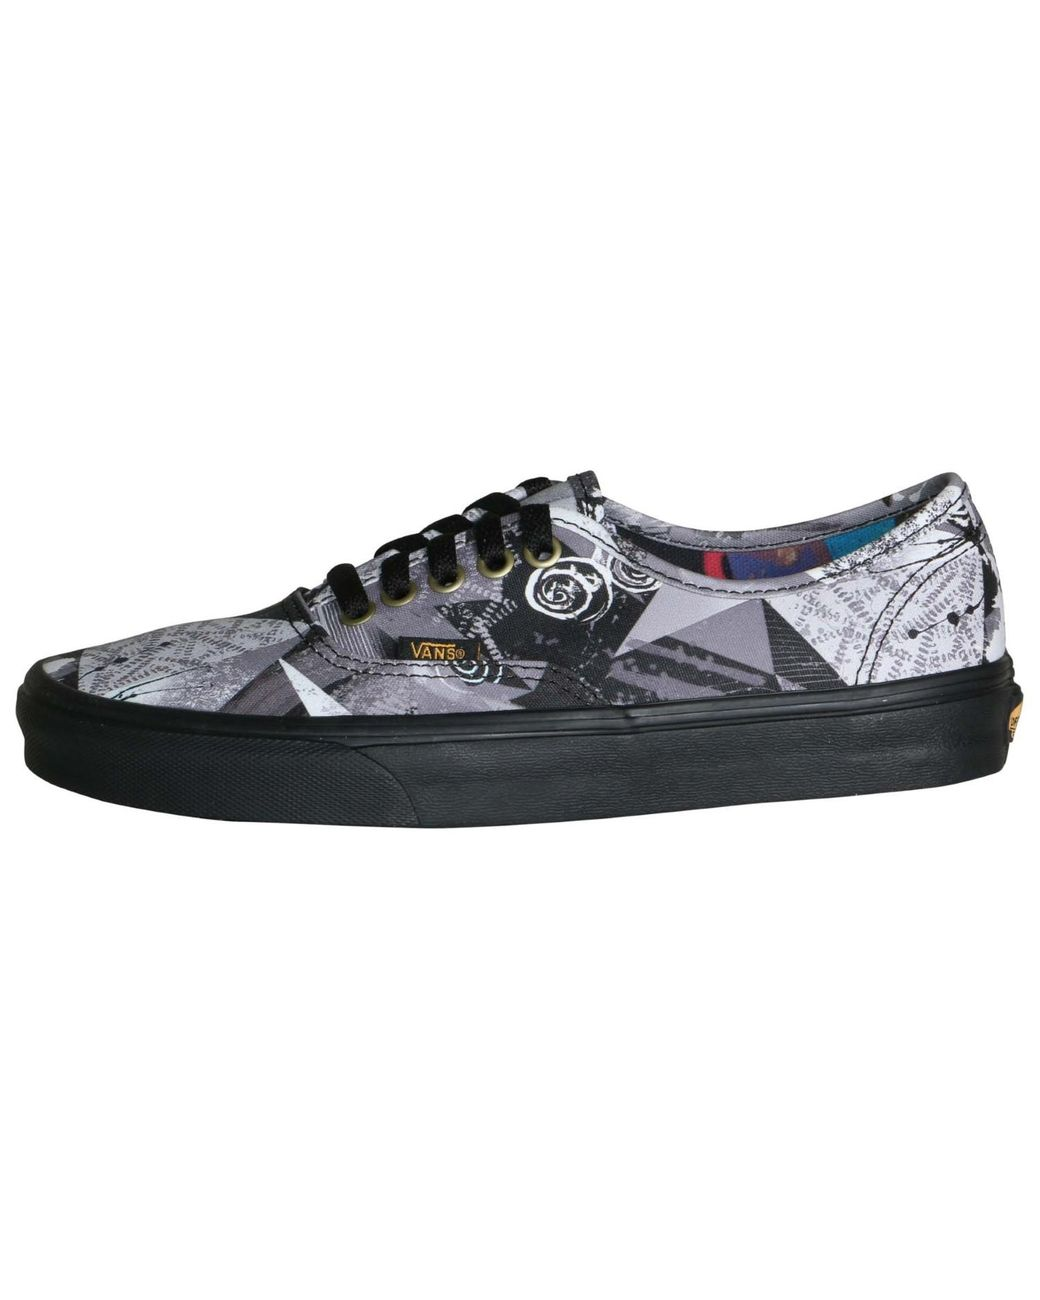 06278ba8d7 Lyst - Vans Unisex Old Skool Abstract Skate Shoes-abstract -10.5- 9 in Gray  for Men - Save 10%